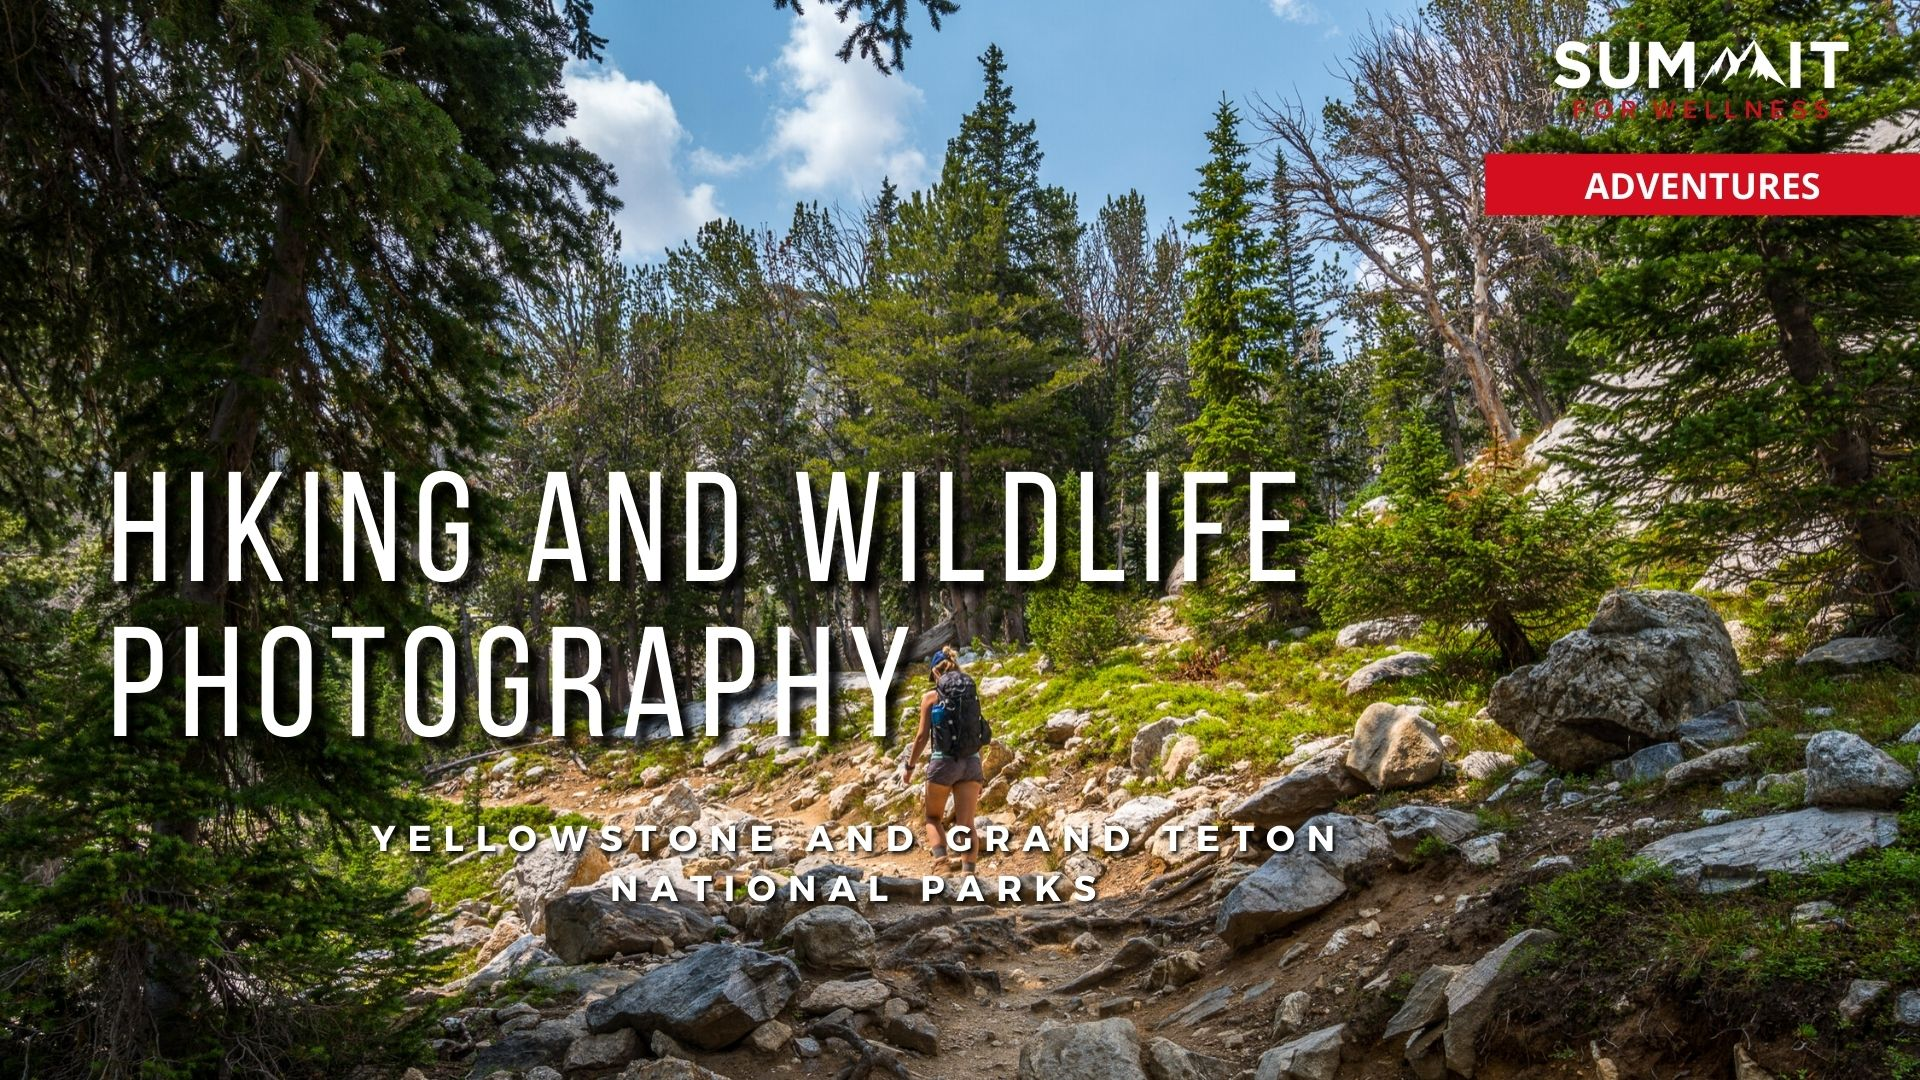 Follow Bryan and Sarah Carroll as they hike through Yellowstone and the Tetons